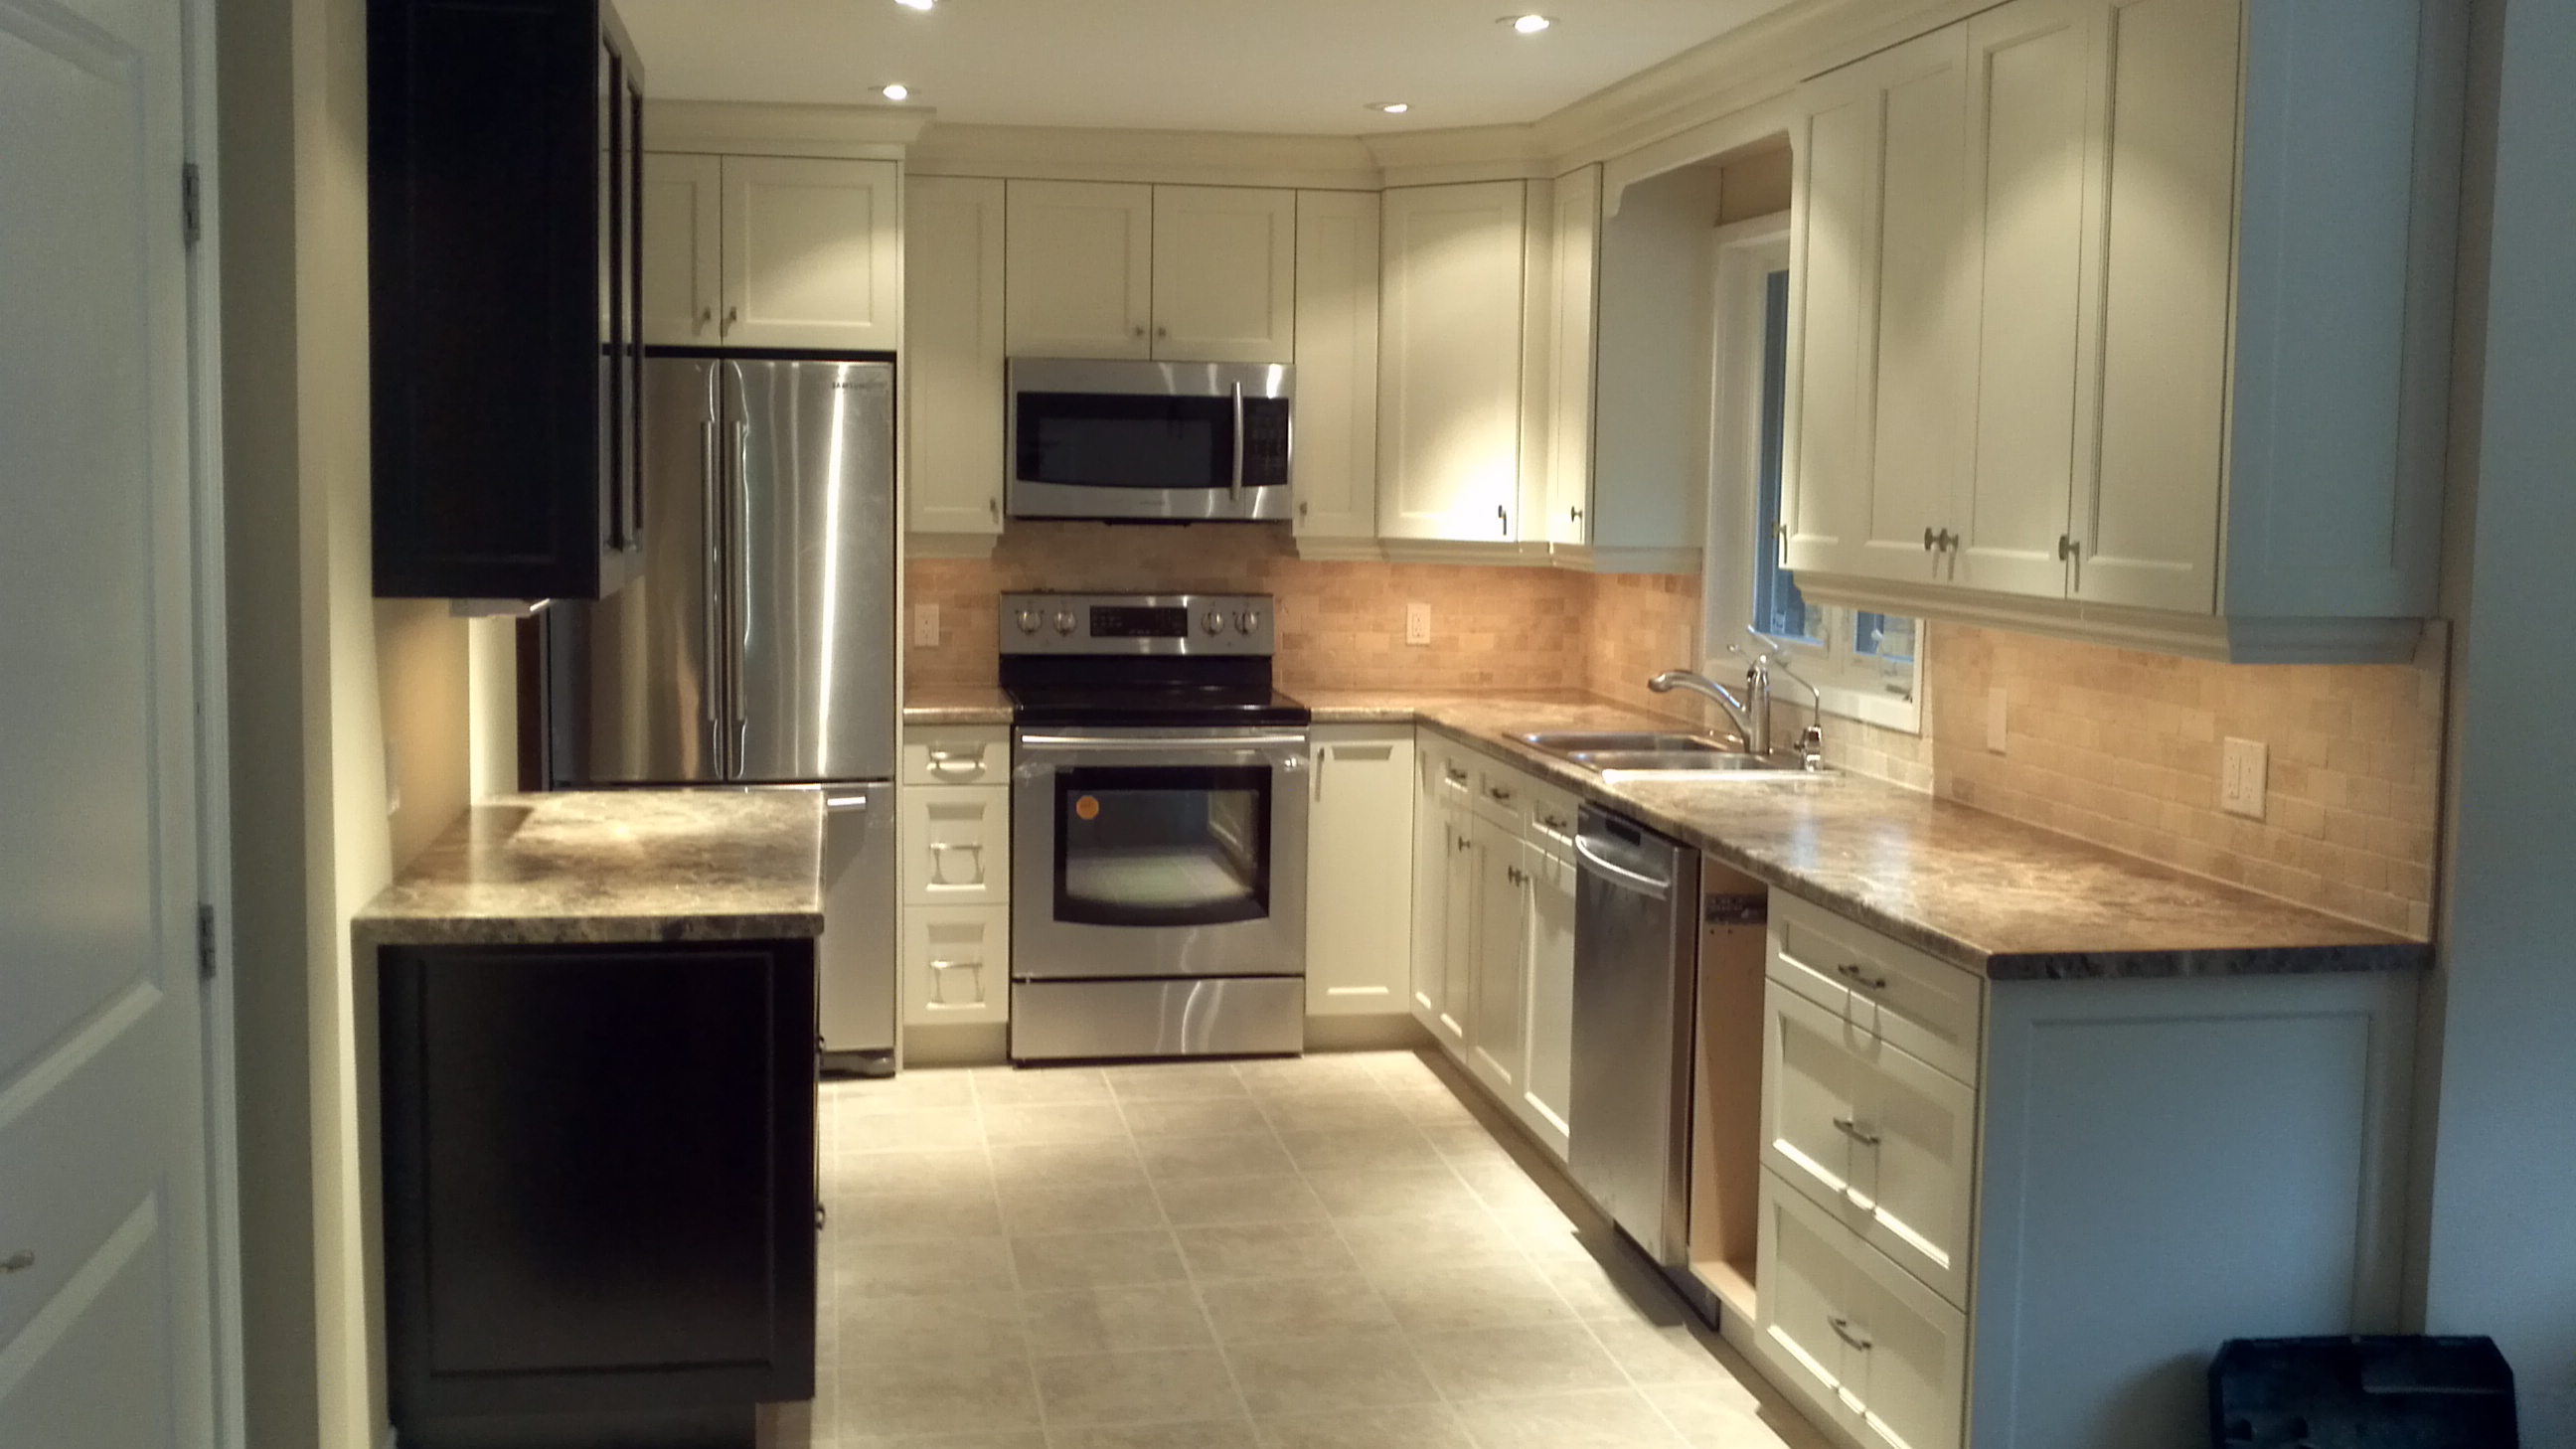 Pot lights for kitchen -  Marvelous Pot Lights For Kitchen Here Are Some Example Of Recent Kitchens We Have Helped Contractors